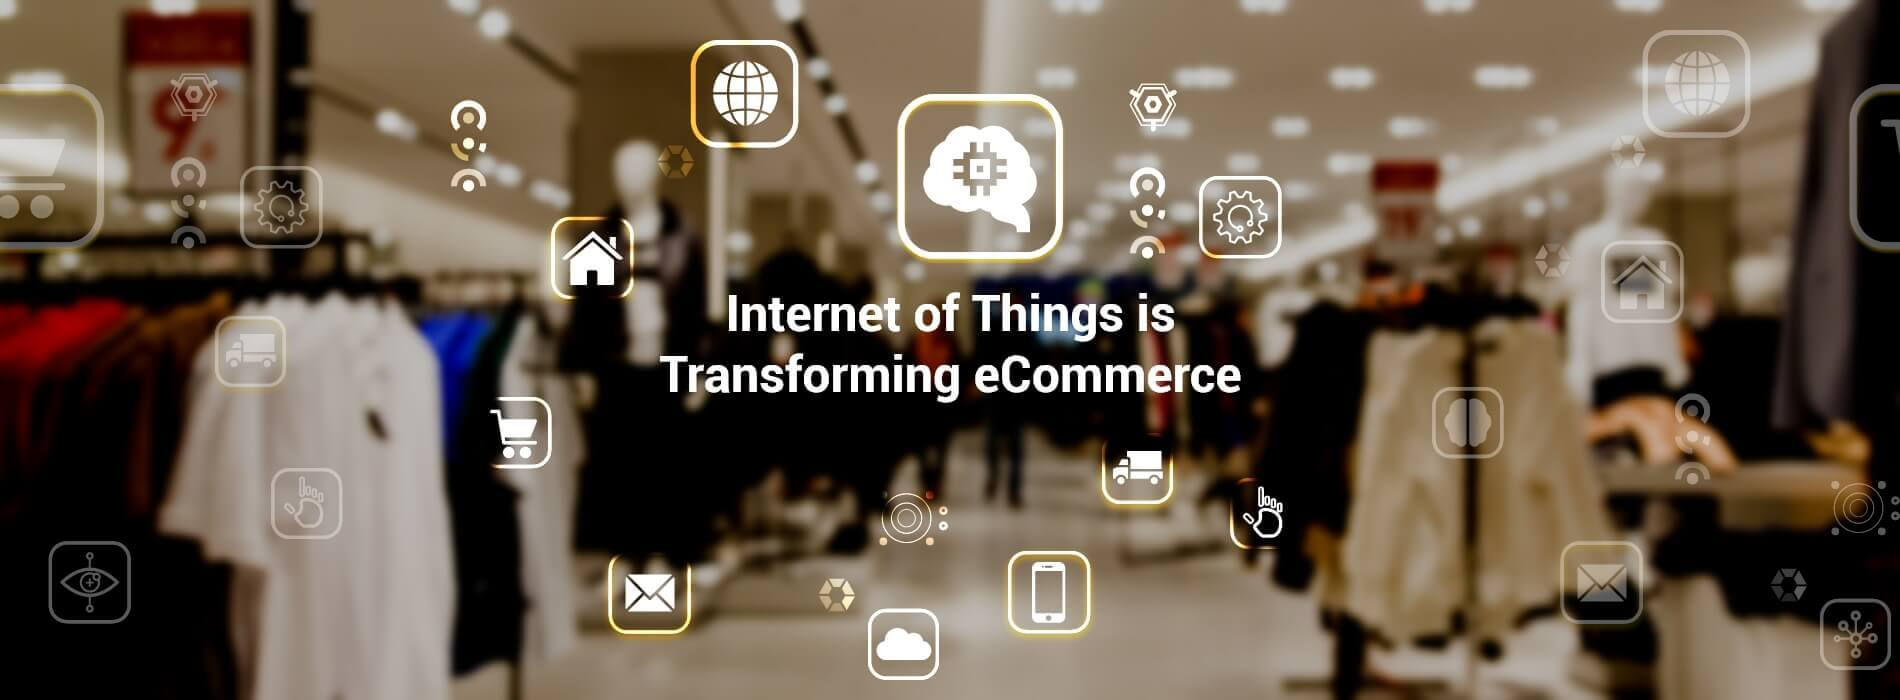 Five Ways Internet of Things is Transforming eCommerce